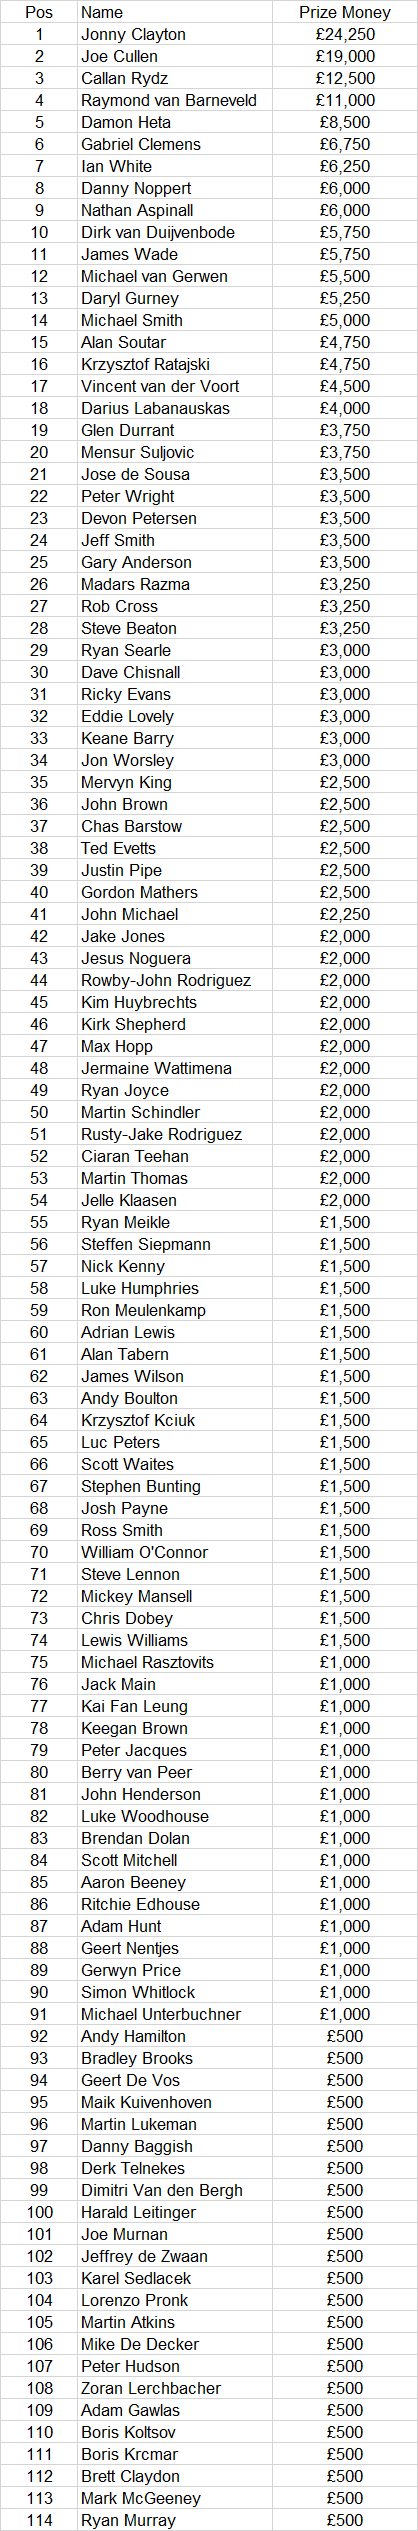 Players Championship Order of Merit